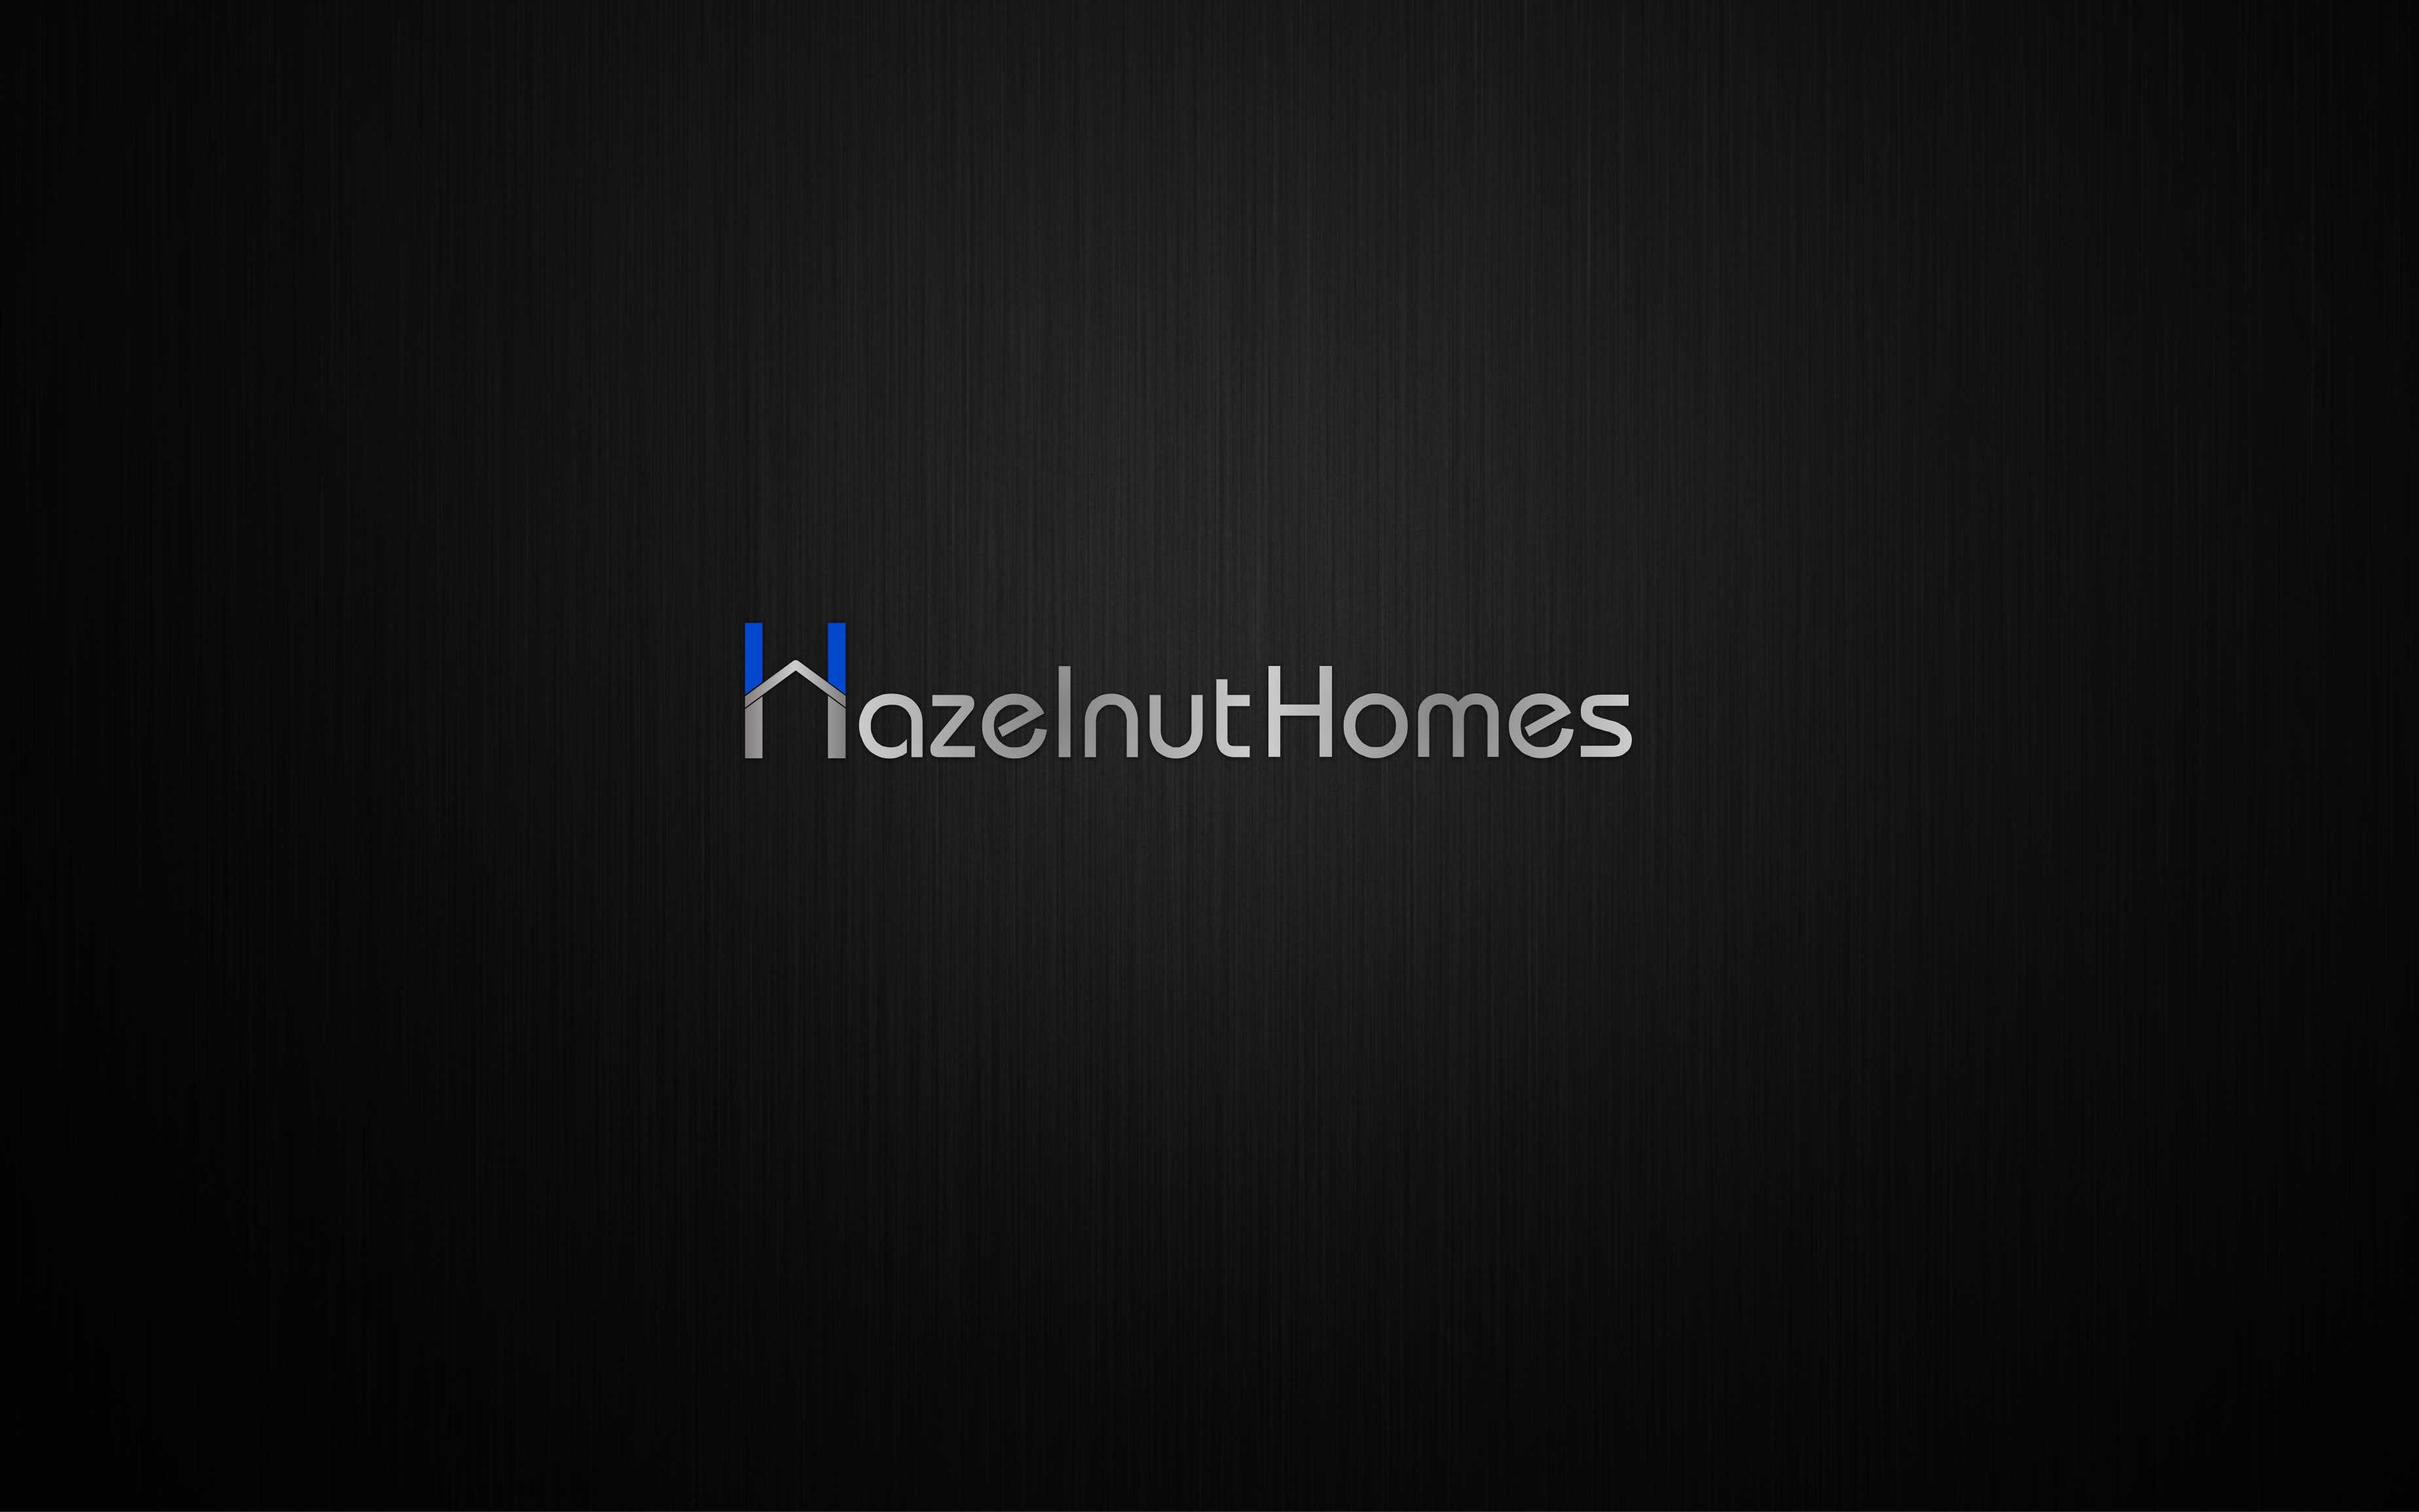 Logo Design by Vlad No Last Name - Entry No. 58 in the Logo Design Contest Unique Logo Design Wanted for Hazelnut Homes.